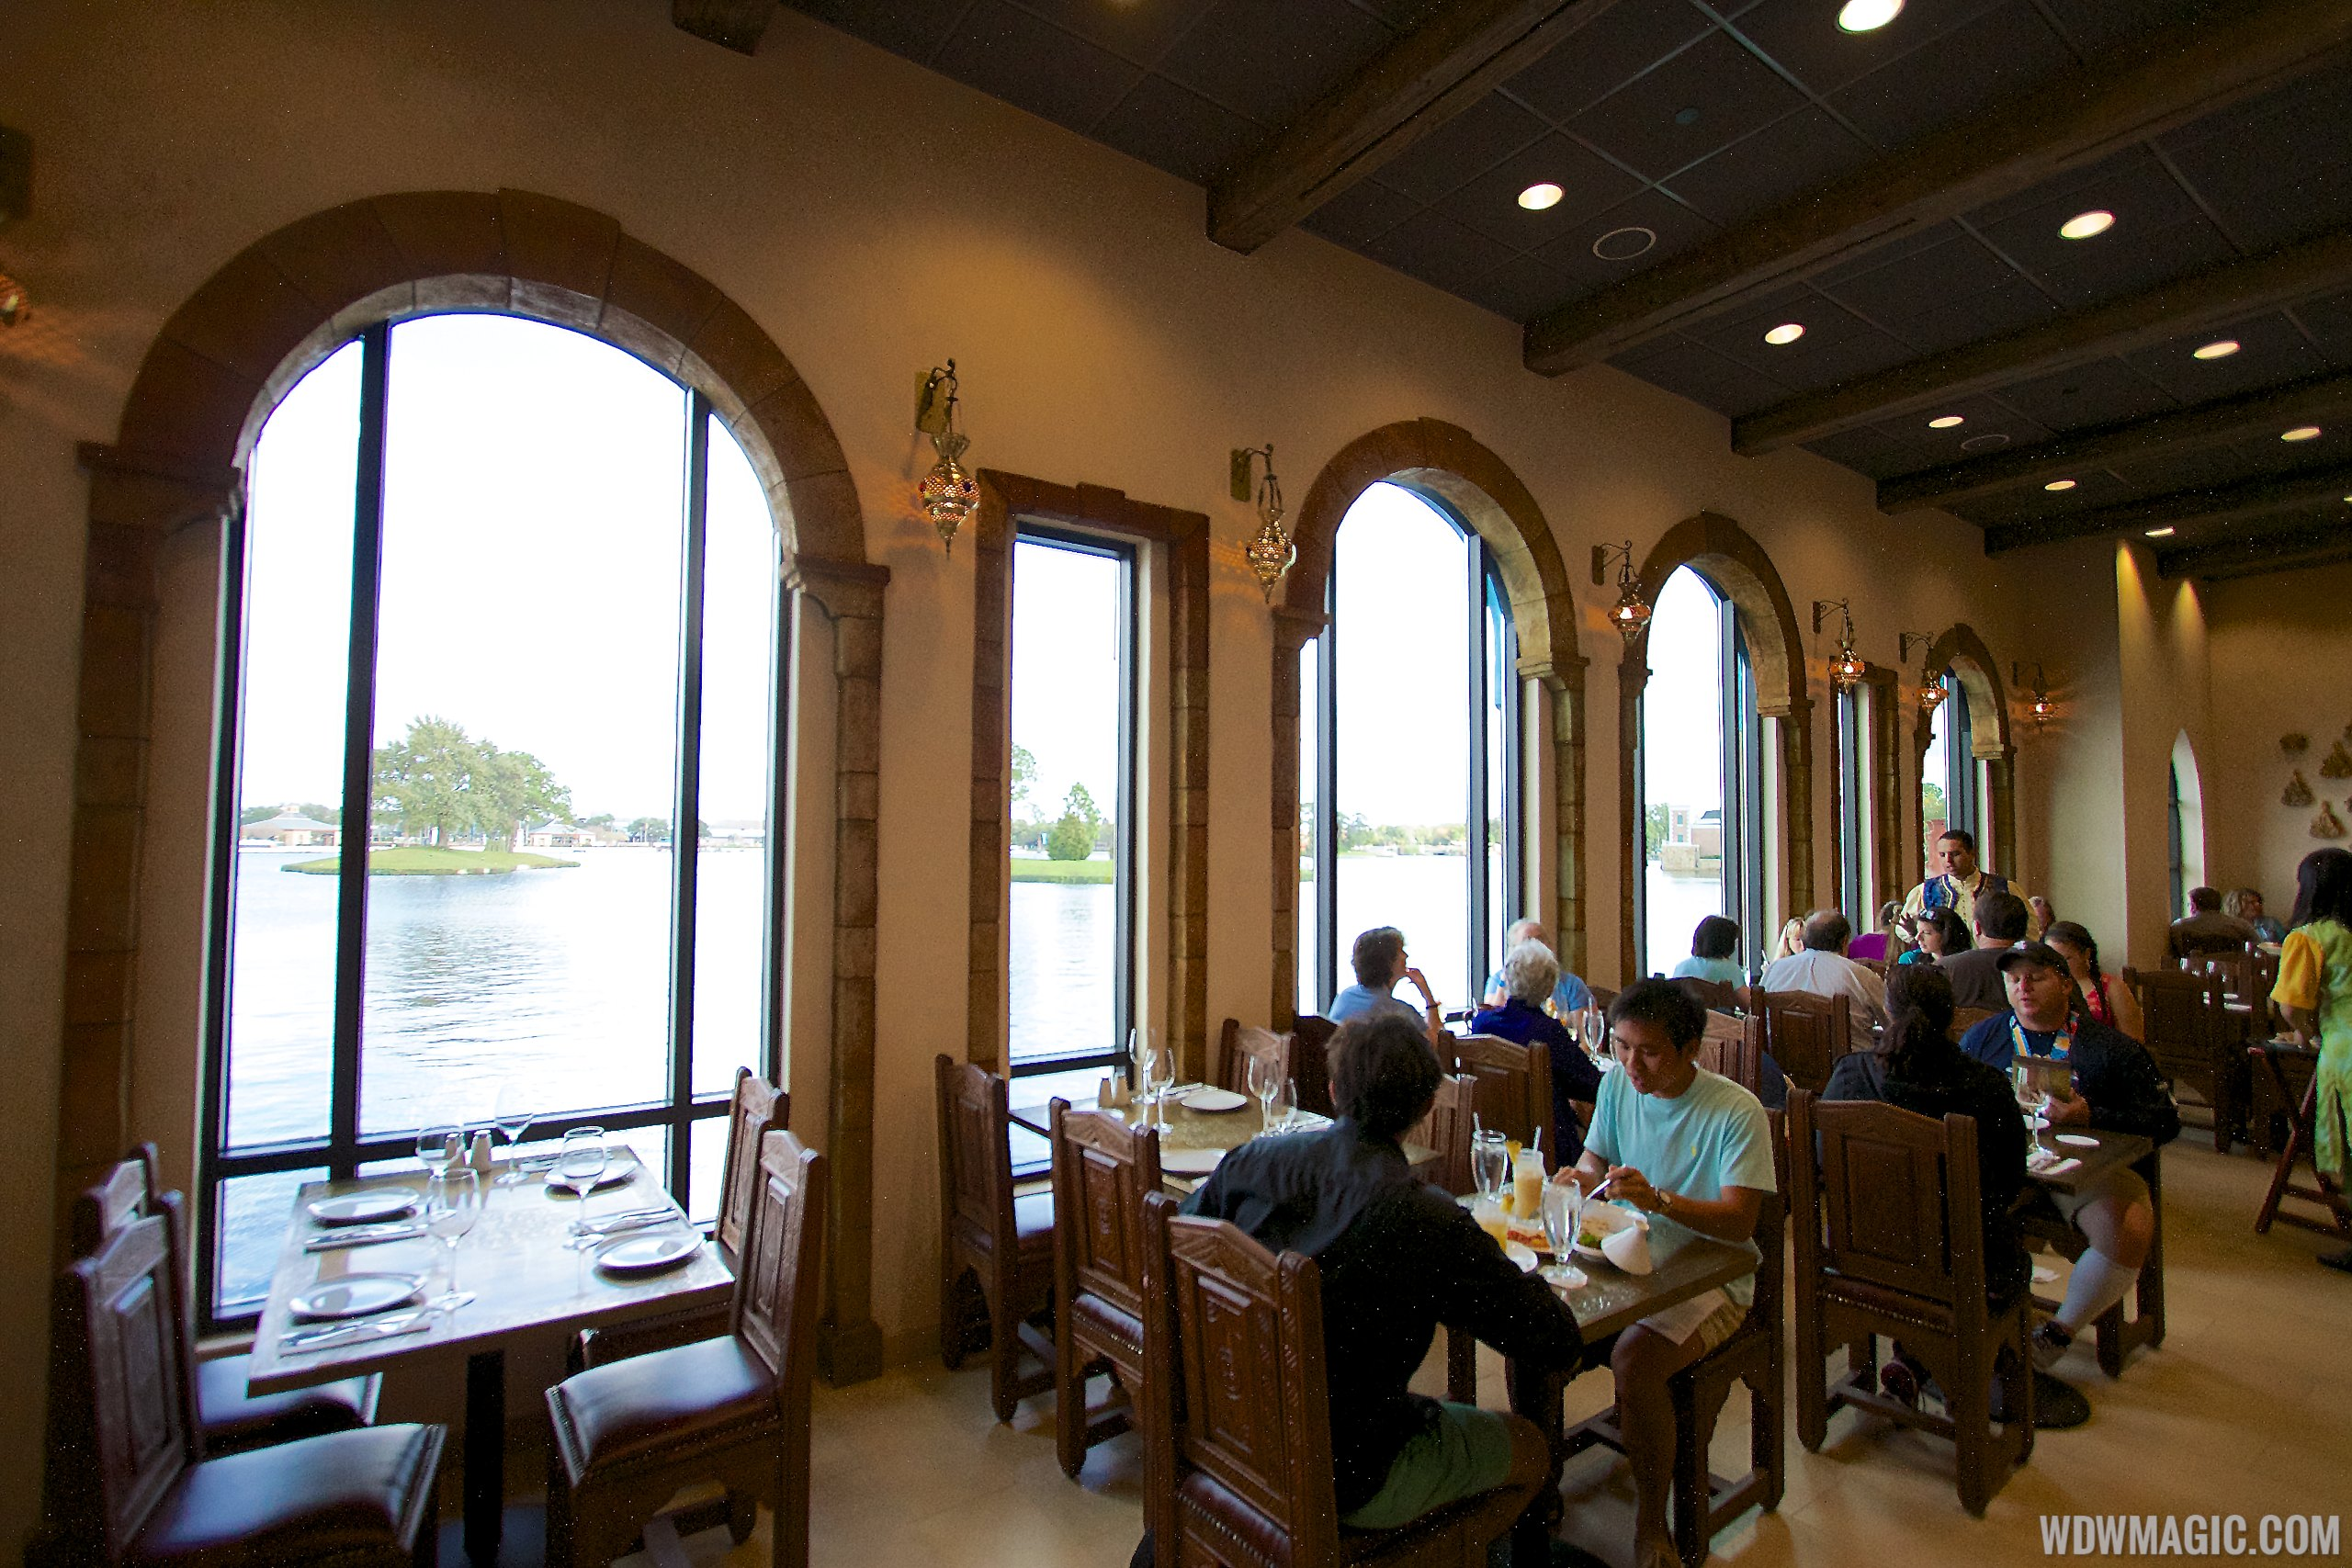 Indoor dining room overlooking the Lagoon